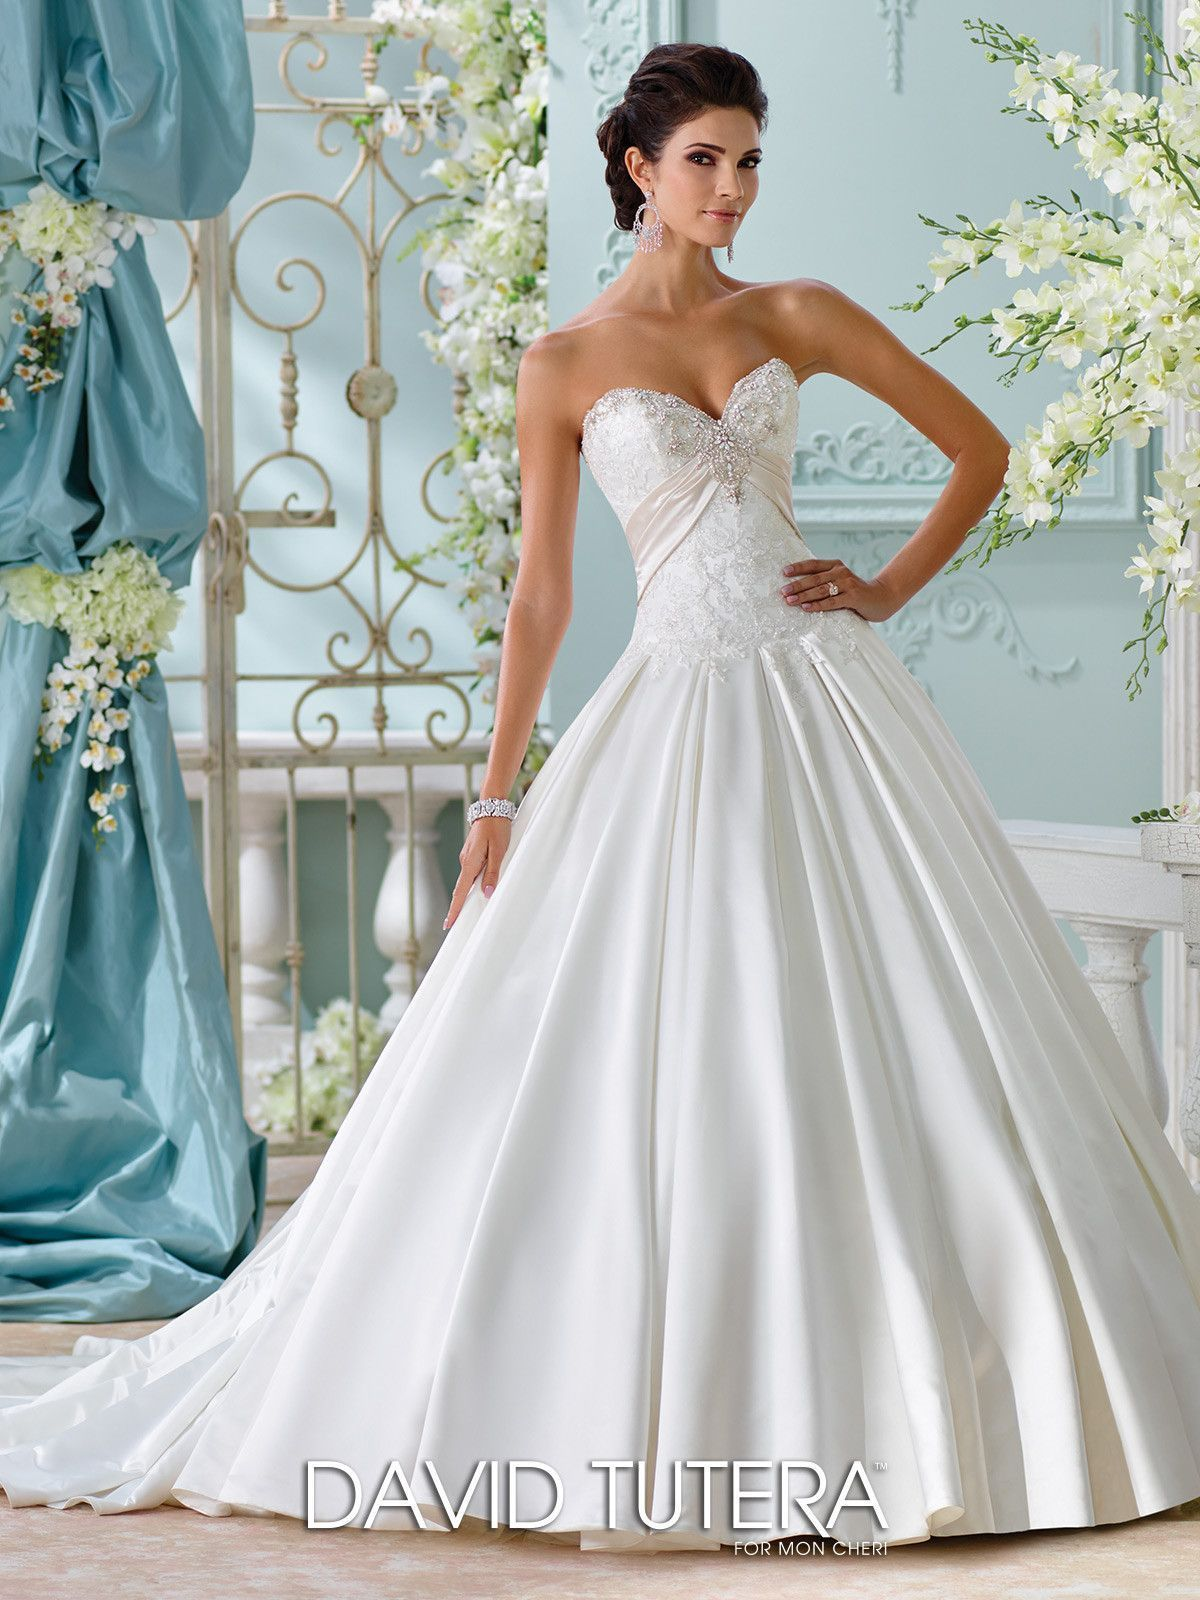 David Tutera - Heloise - 116200 - All Dressed Up, Bridal Gown ...